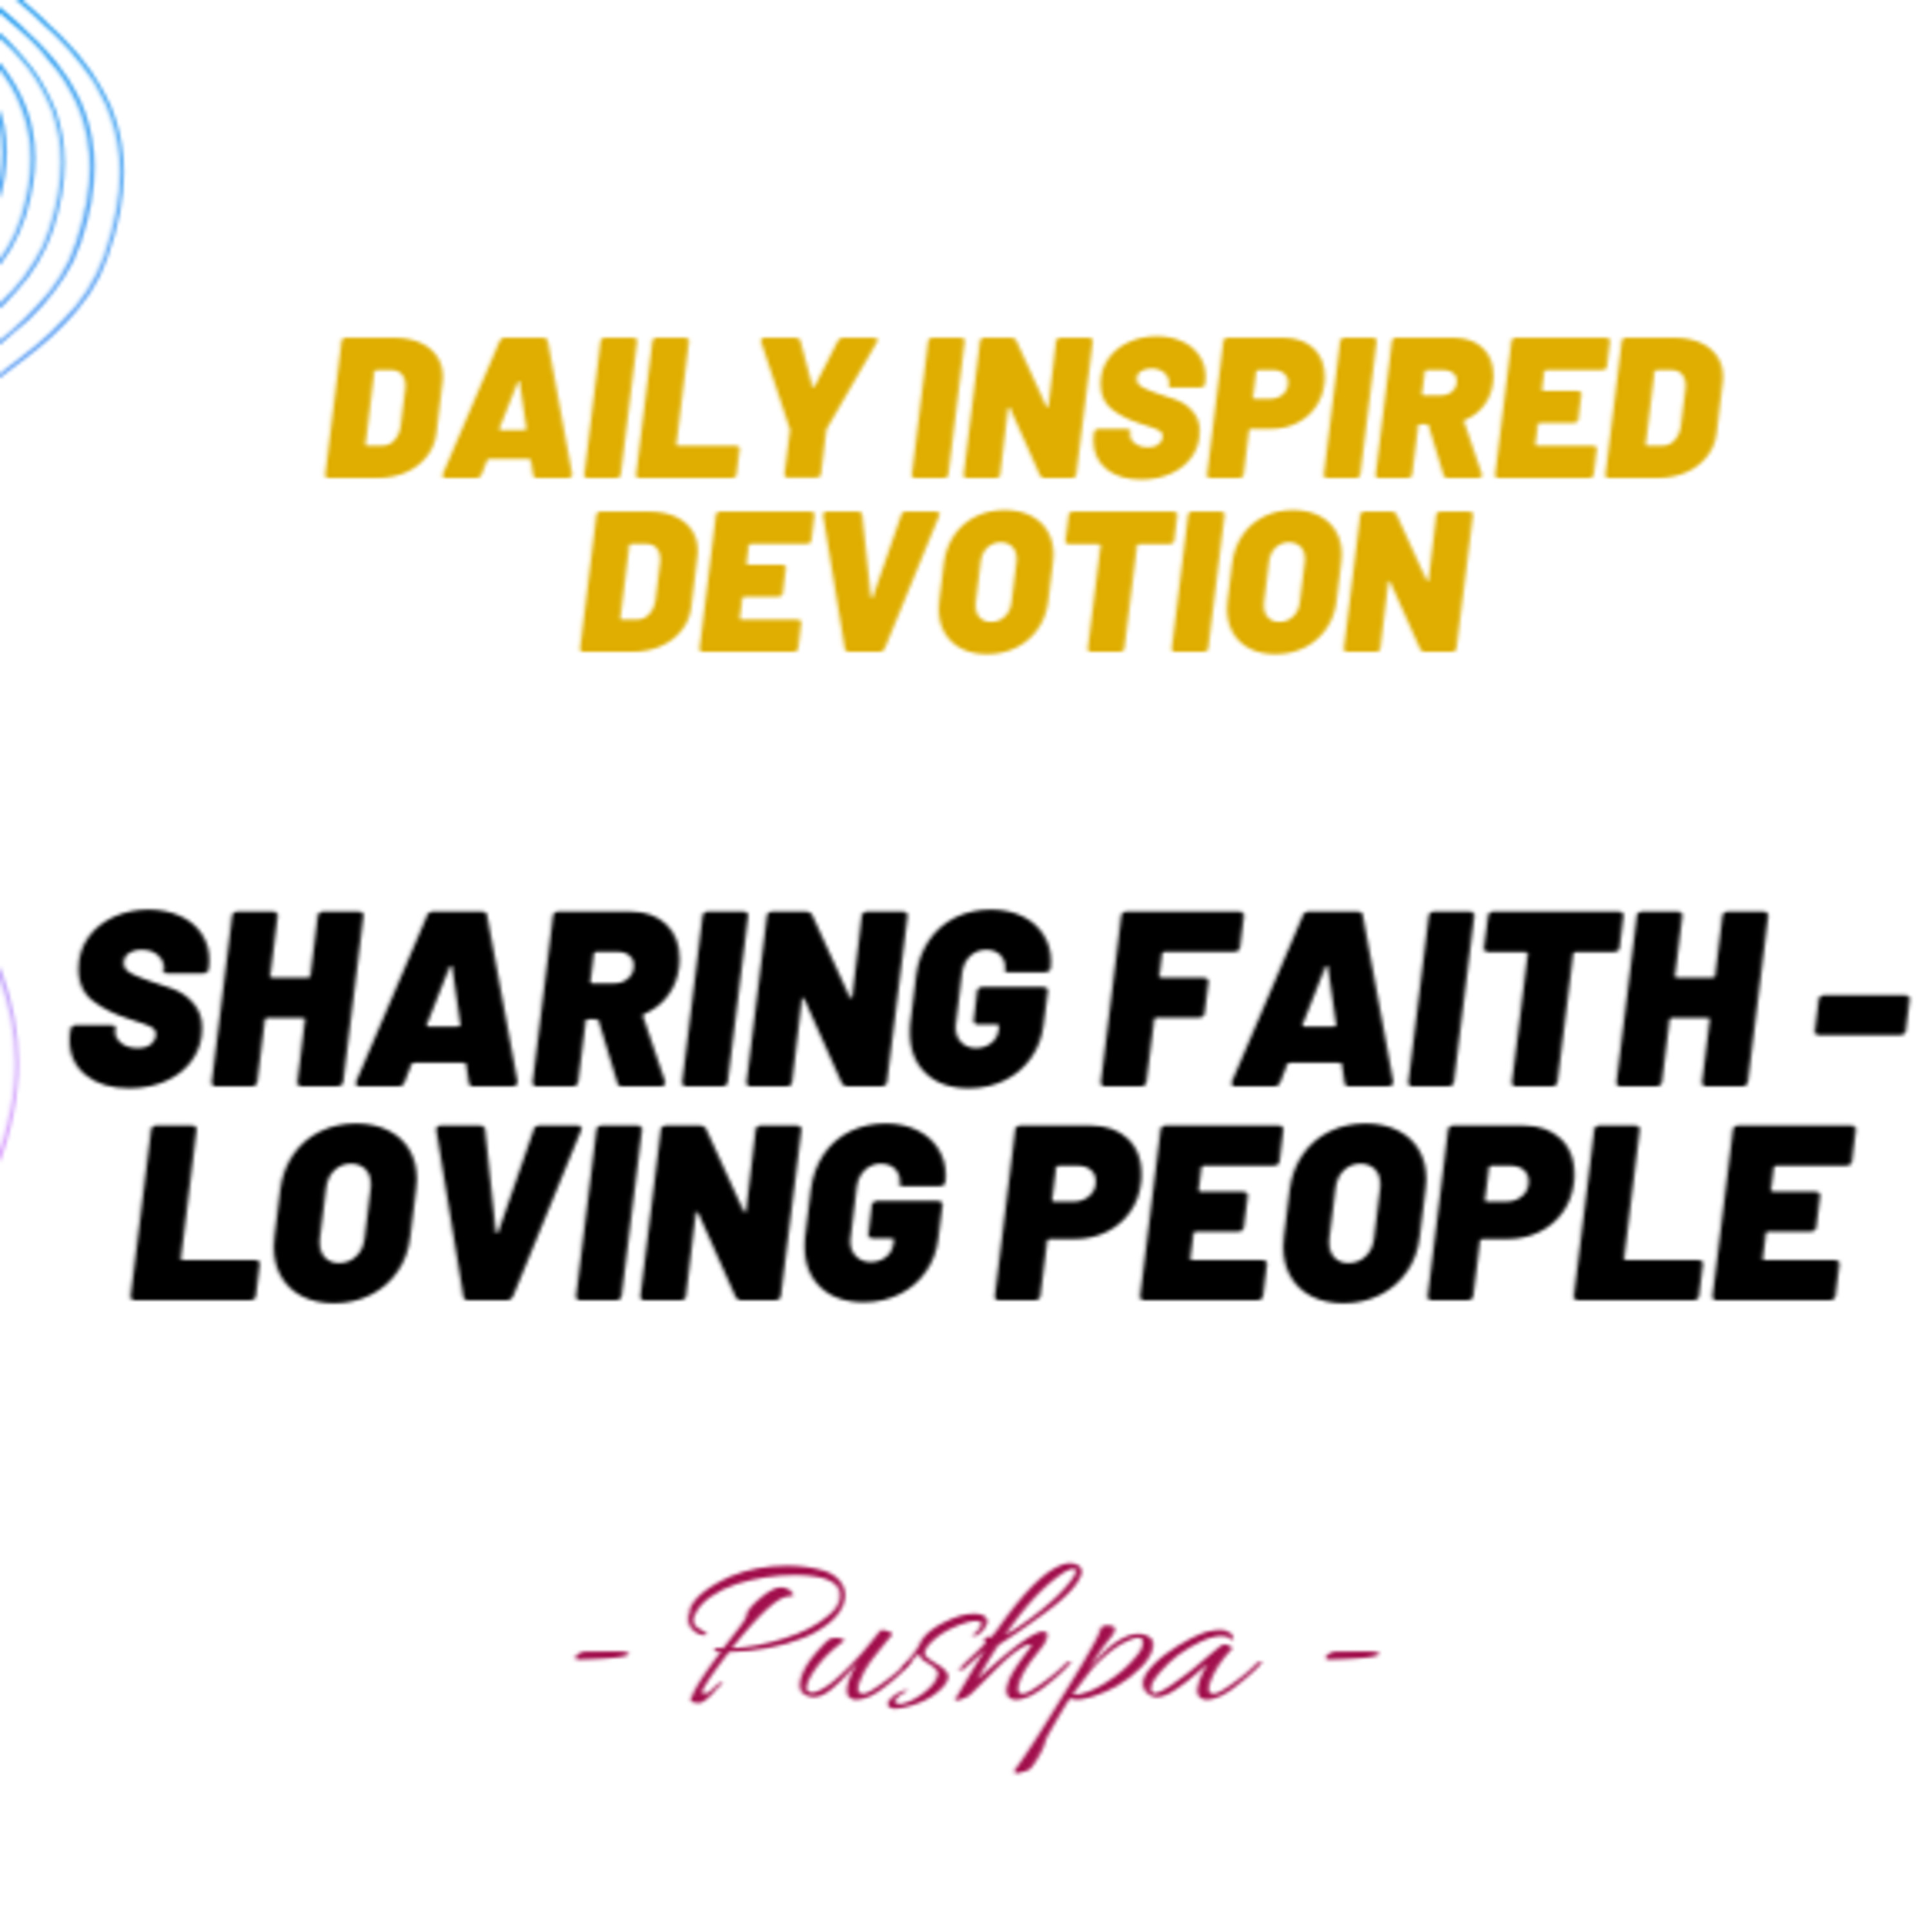 Daily Inspired Devotion with Pushpa